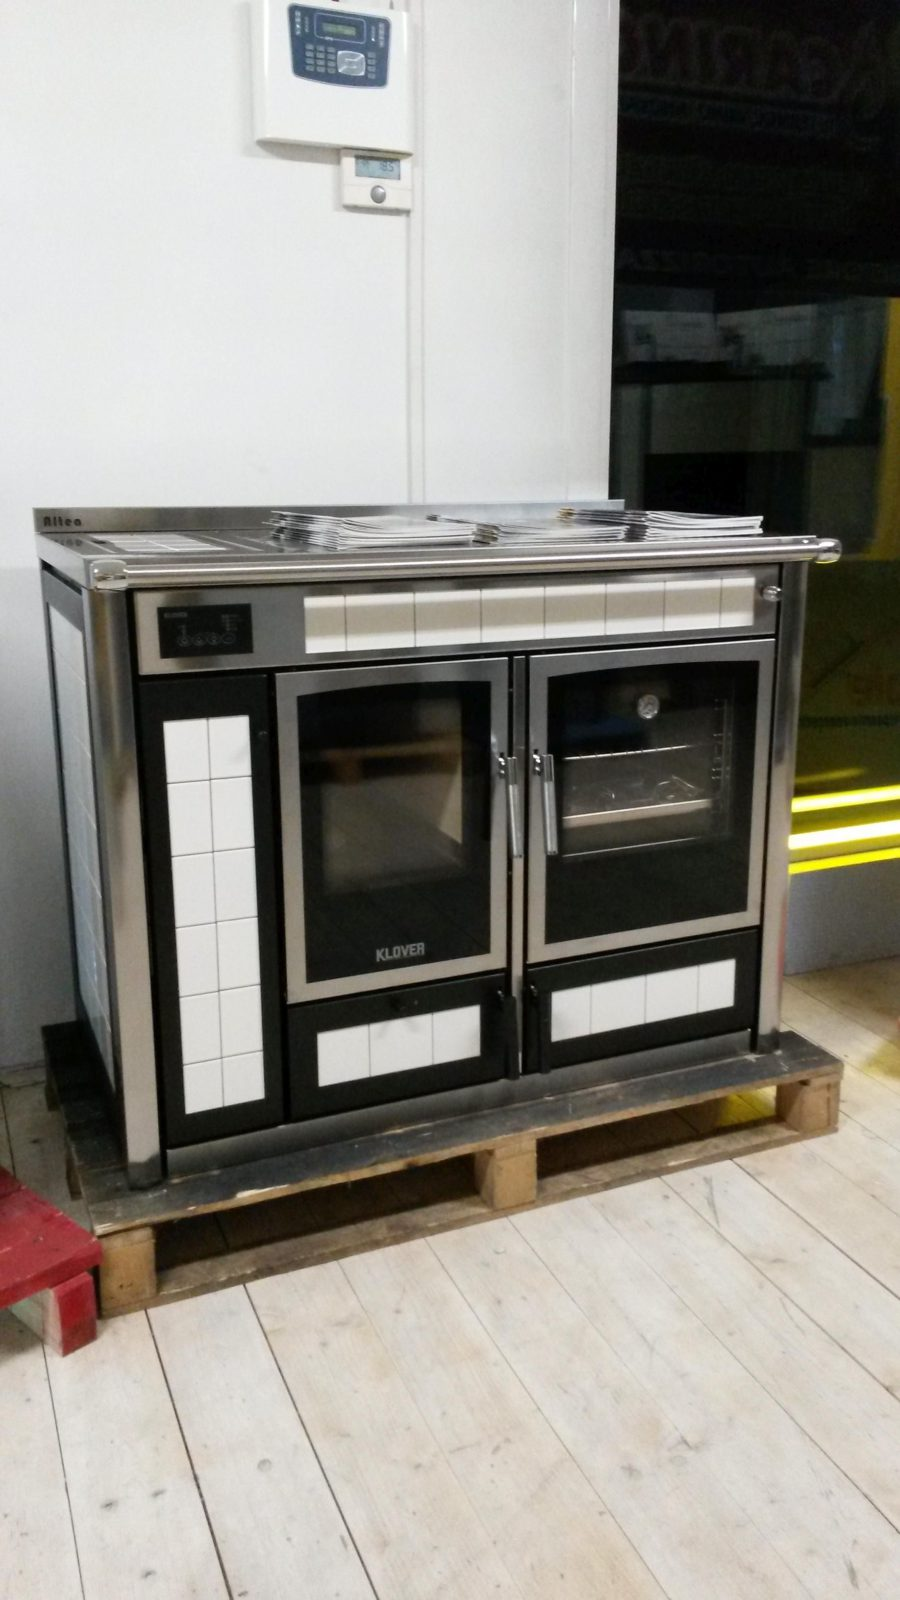 Termocucina klover for Termocucine a legna usate